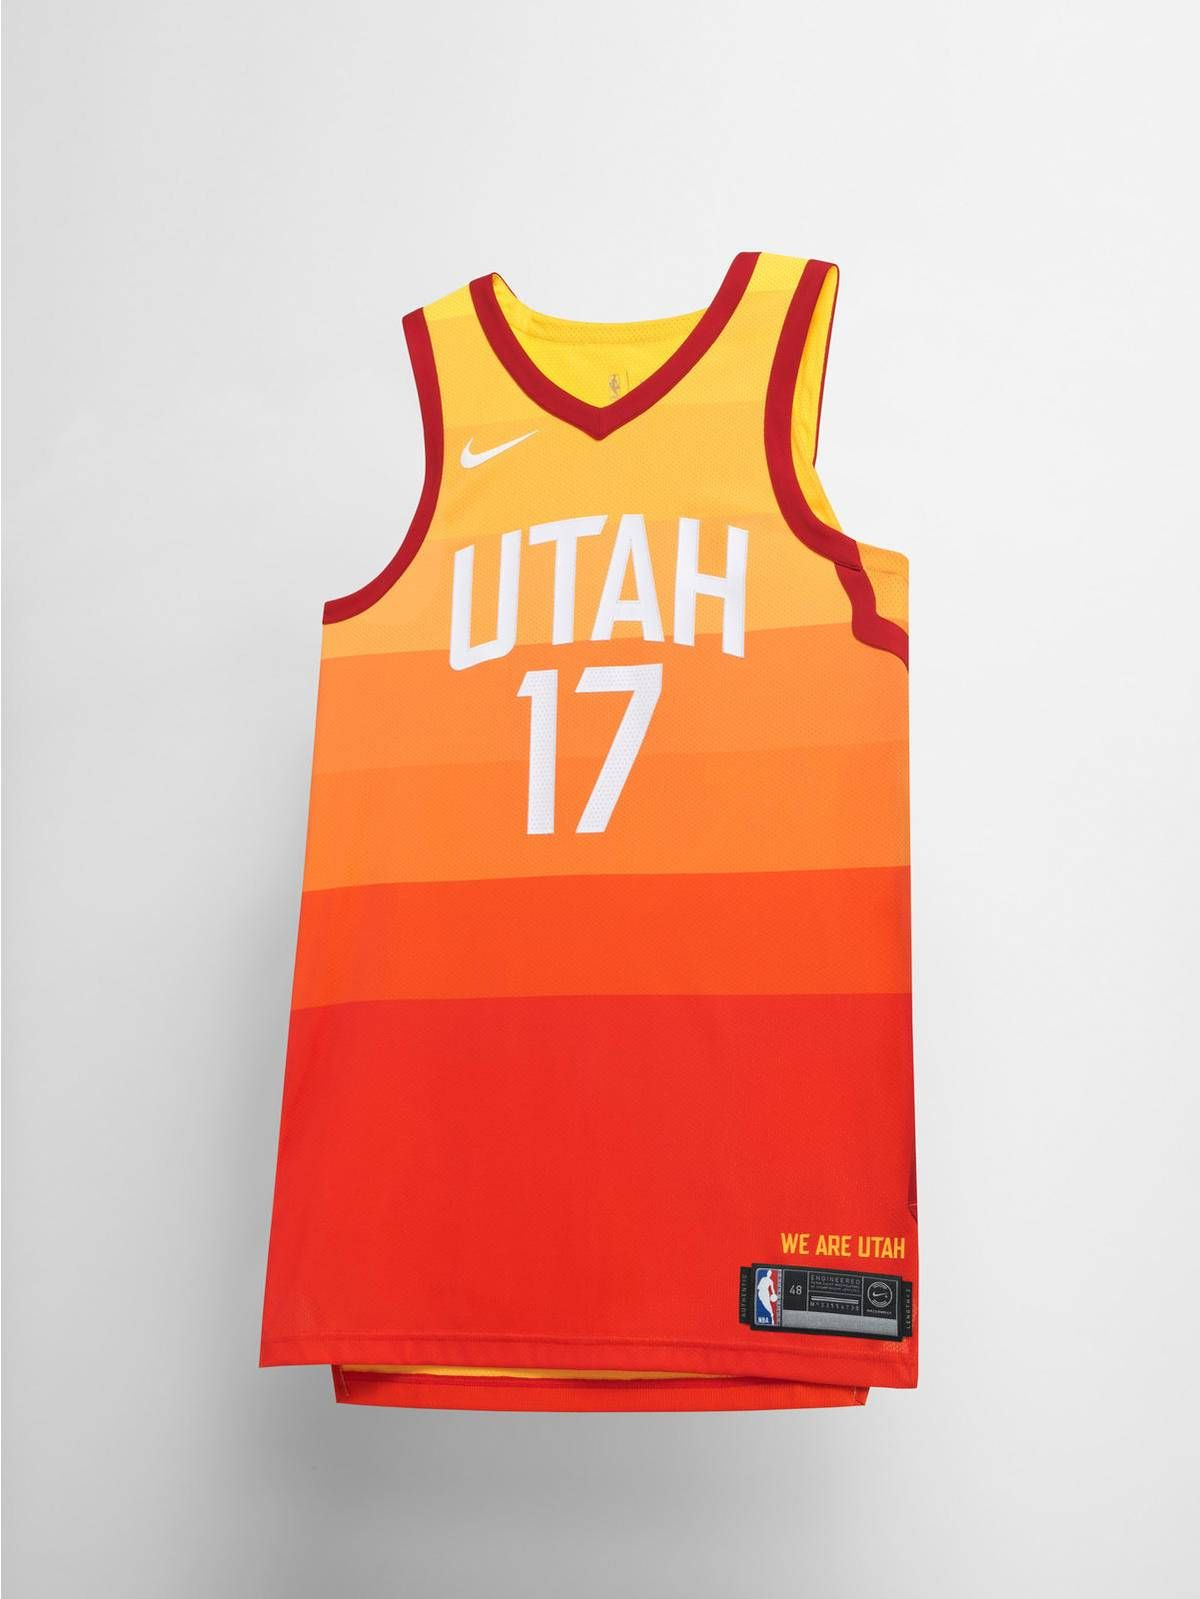 release date 1b23f d858c Look: Nike City Edition jerseys revealed | Jerseys | Nba ...